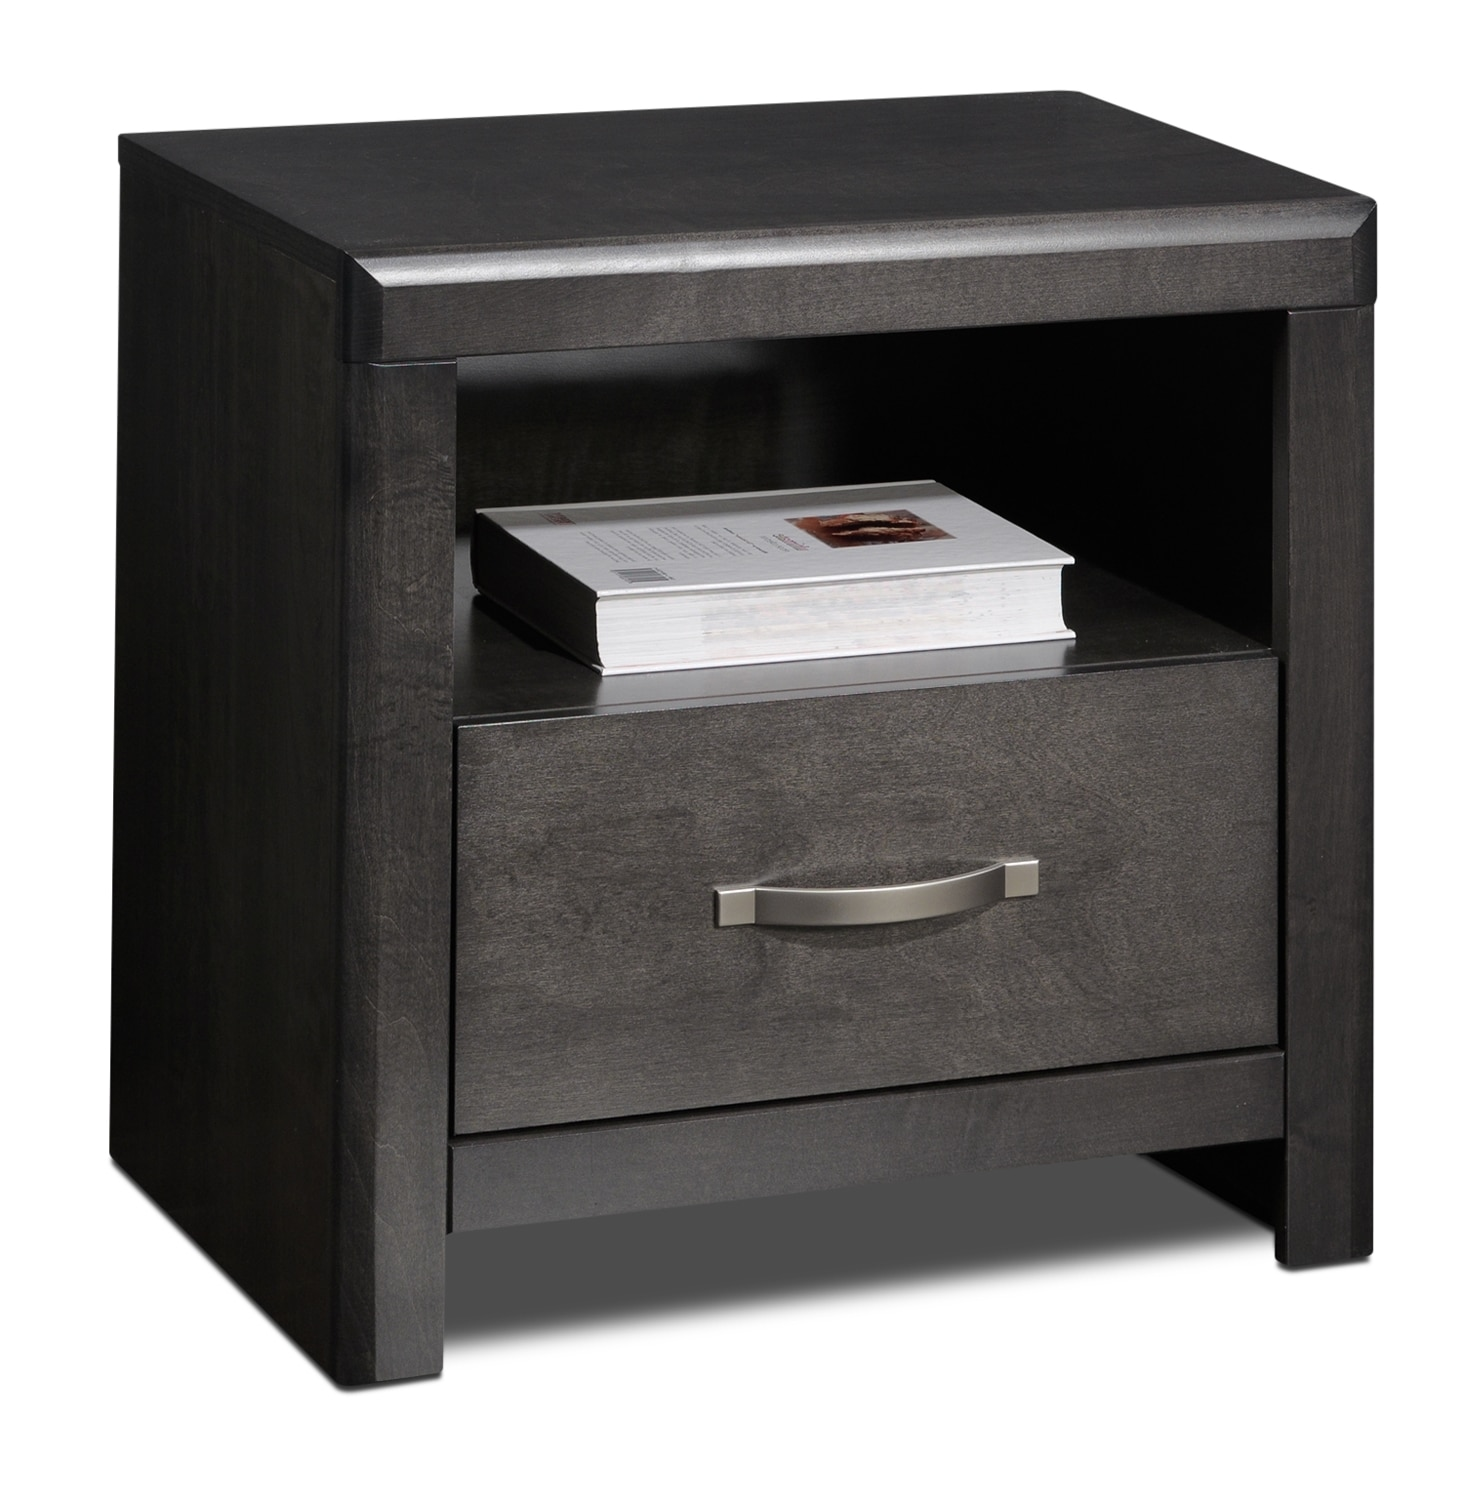 Dessy Night Table - Charcoal